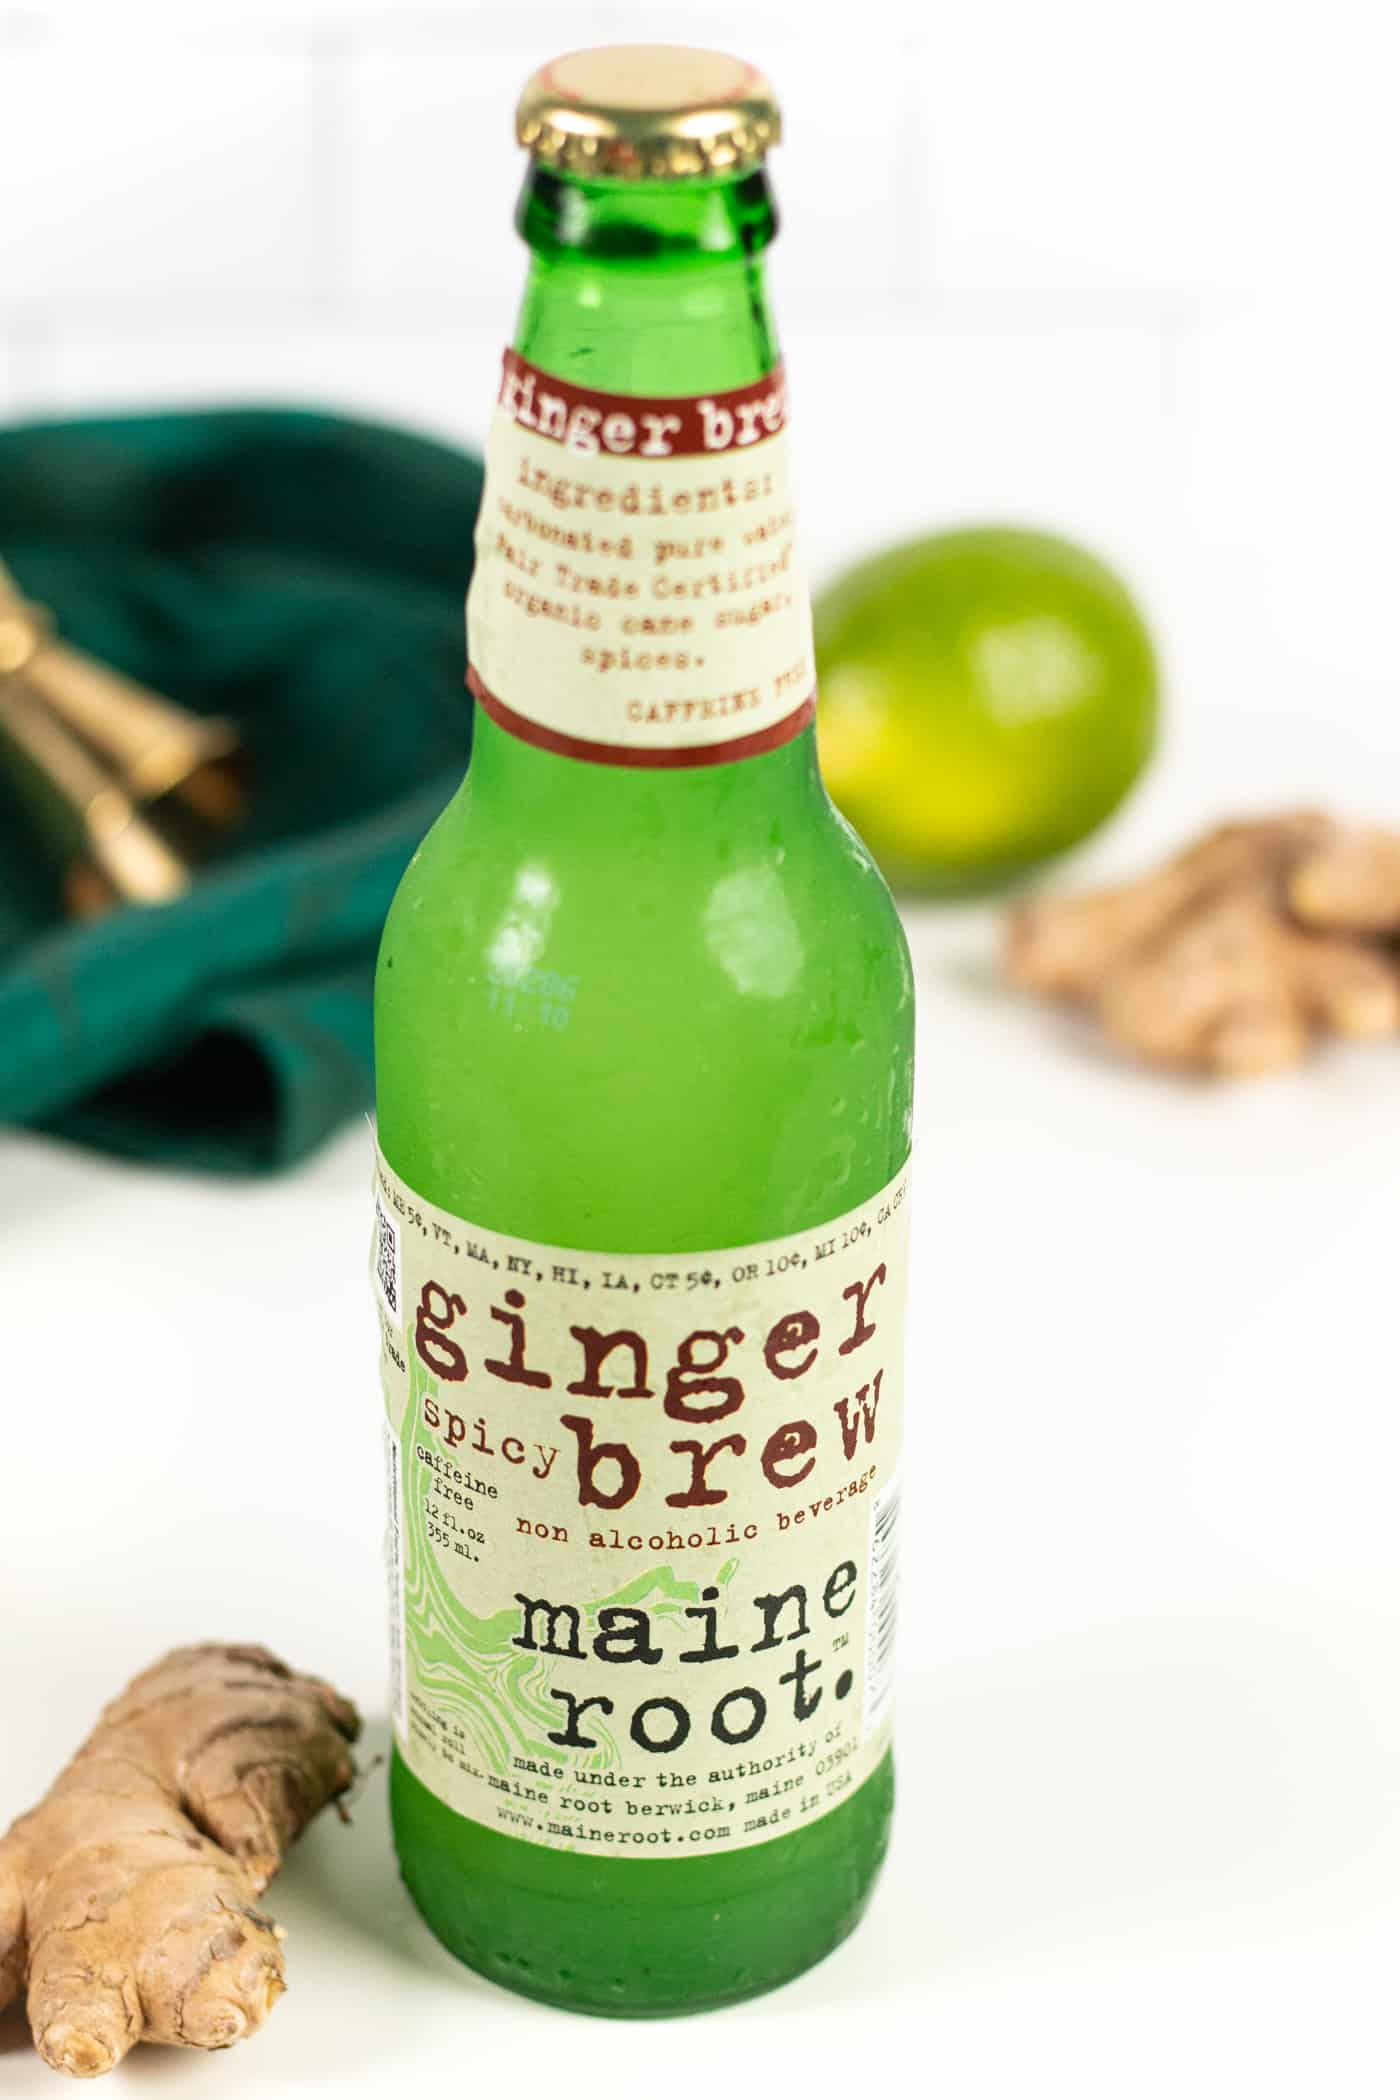 a bottle of maine root ginger brew beer on a white background